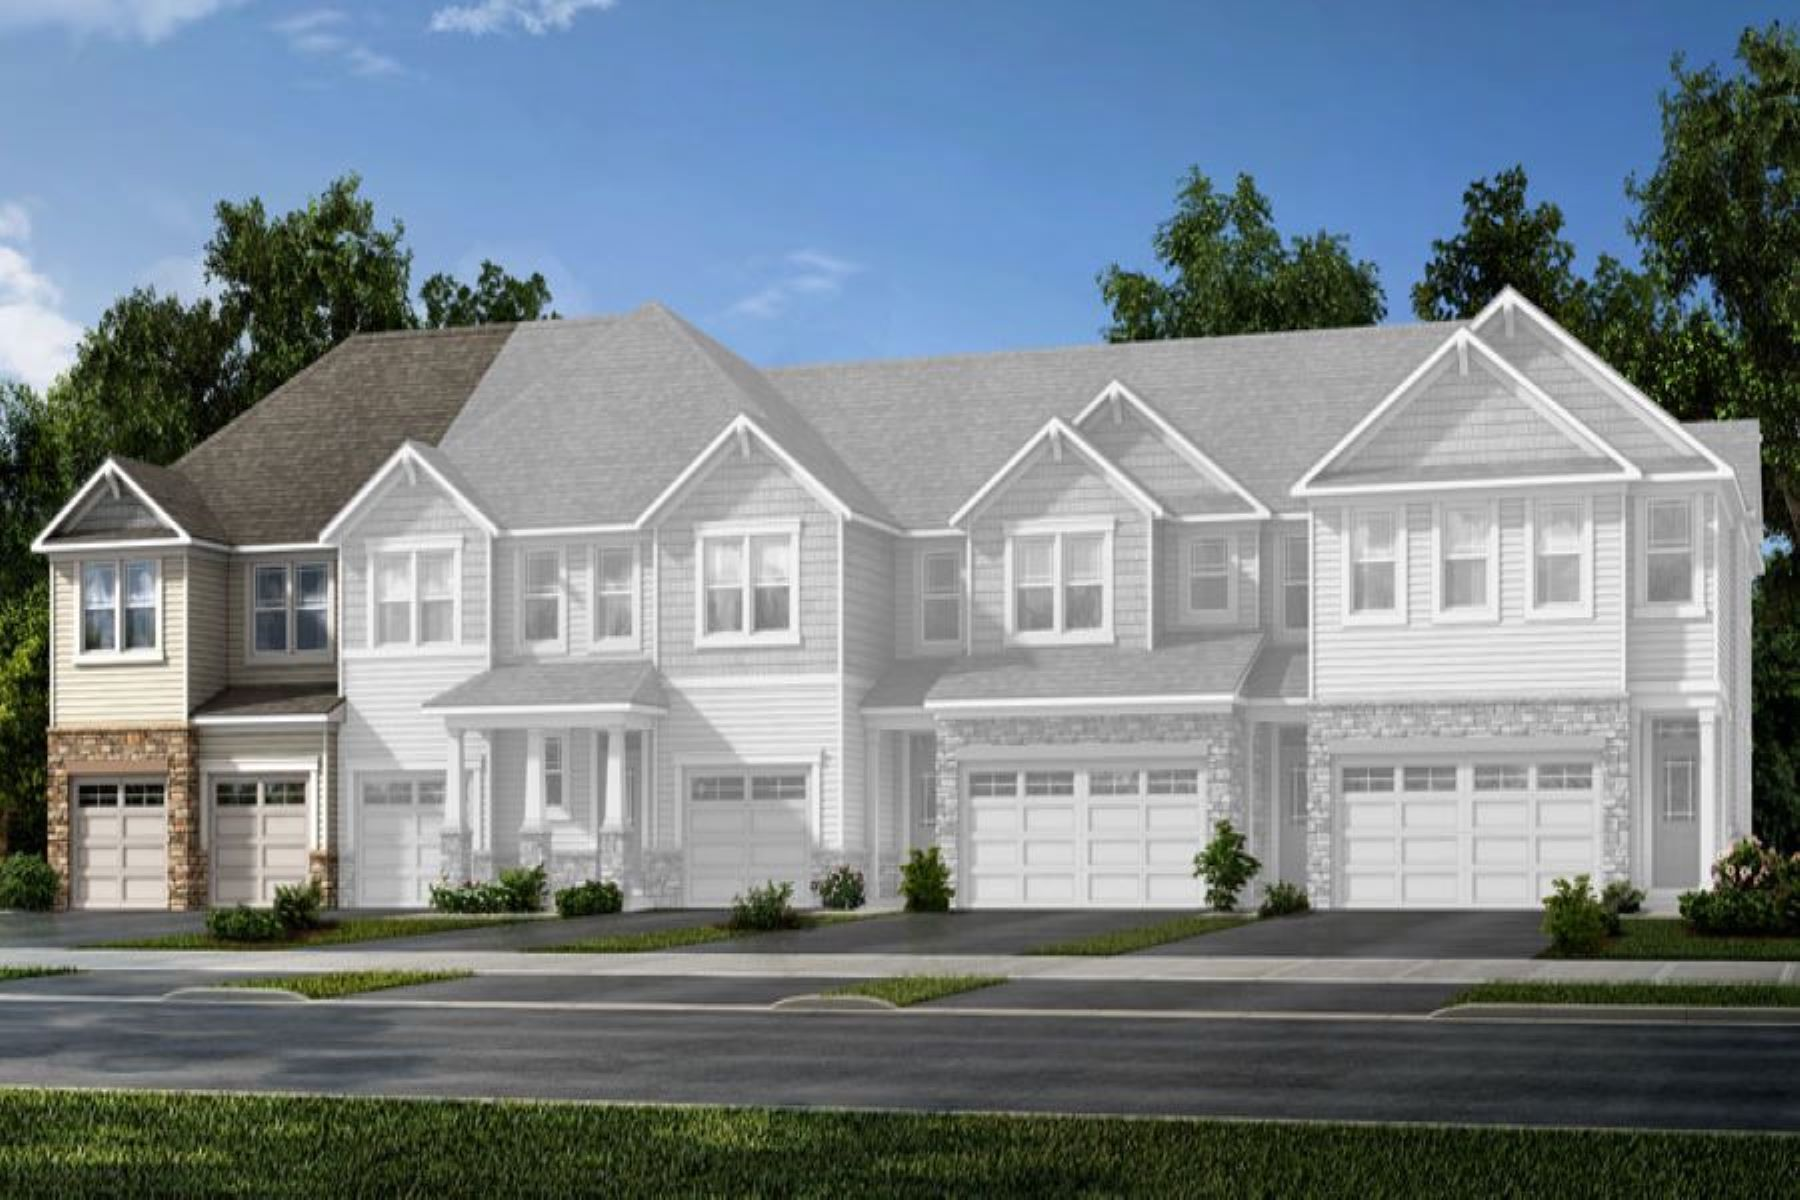 Clifton Plan TownHomes at Galloway Park in Charlotte North Carolina by Mattamy Homes